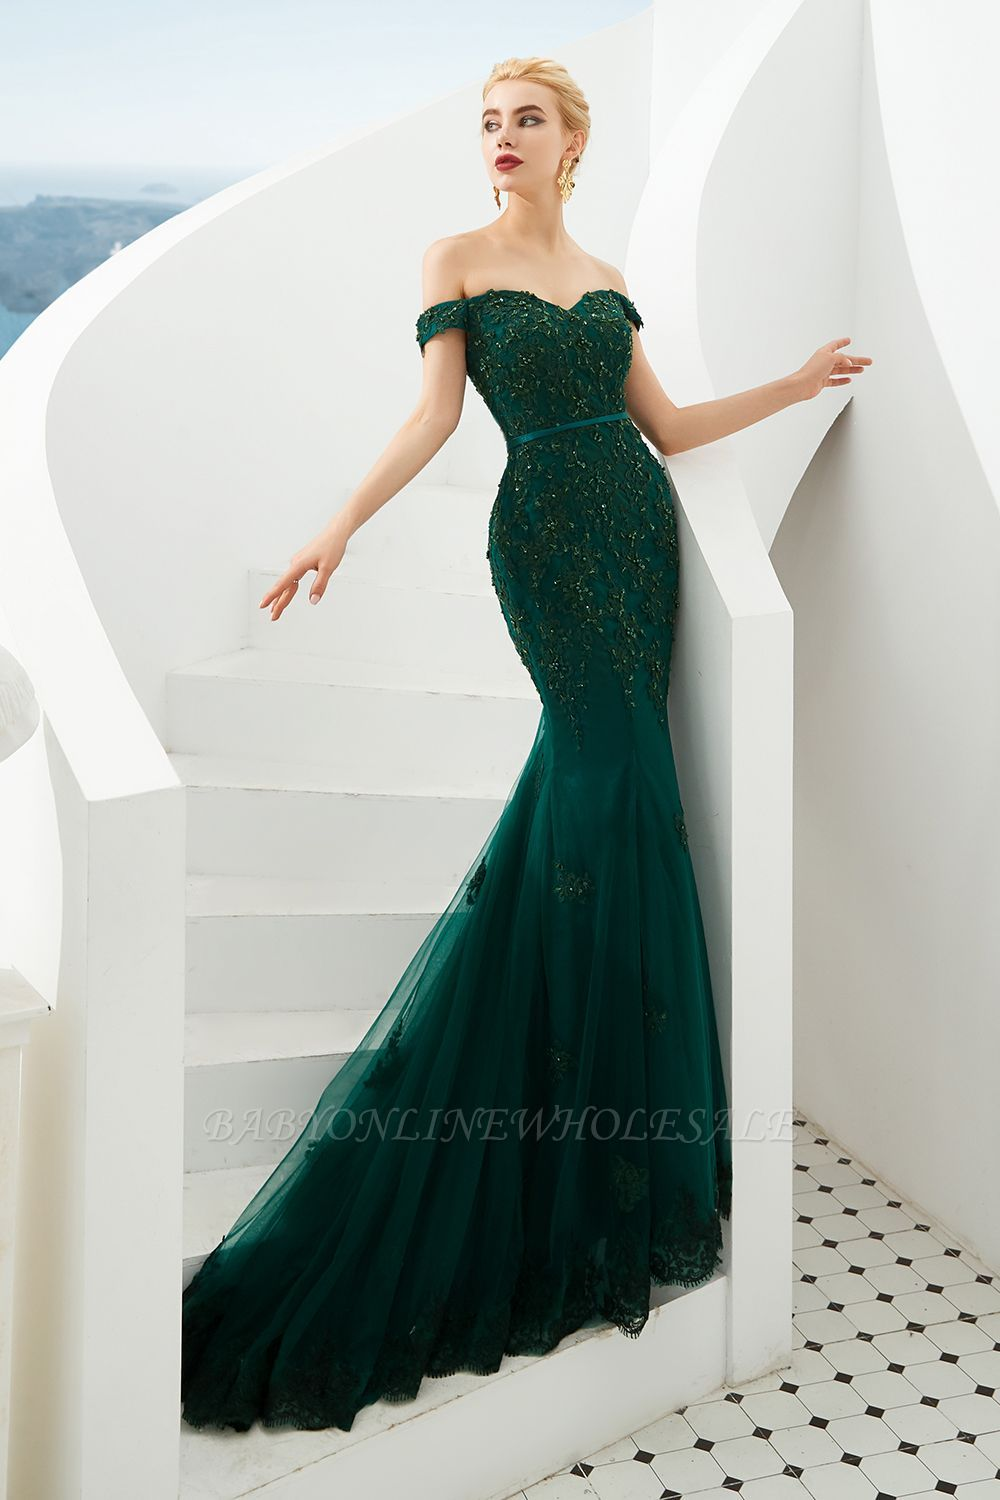 Harvey Emerald Green Mermaid Tulle Prom Dress With Beaded Lace Appliques Green Prom Dress Long Green Prom Dress Green Evening Dress [ 1500 x 1000 Pixel ]